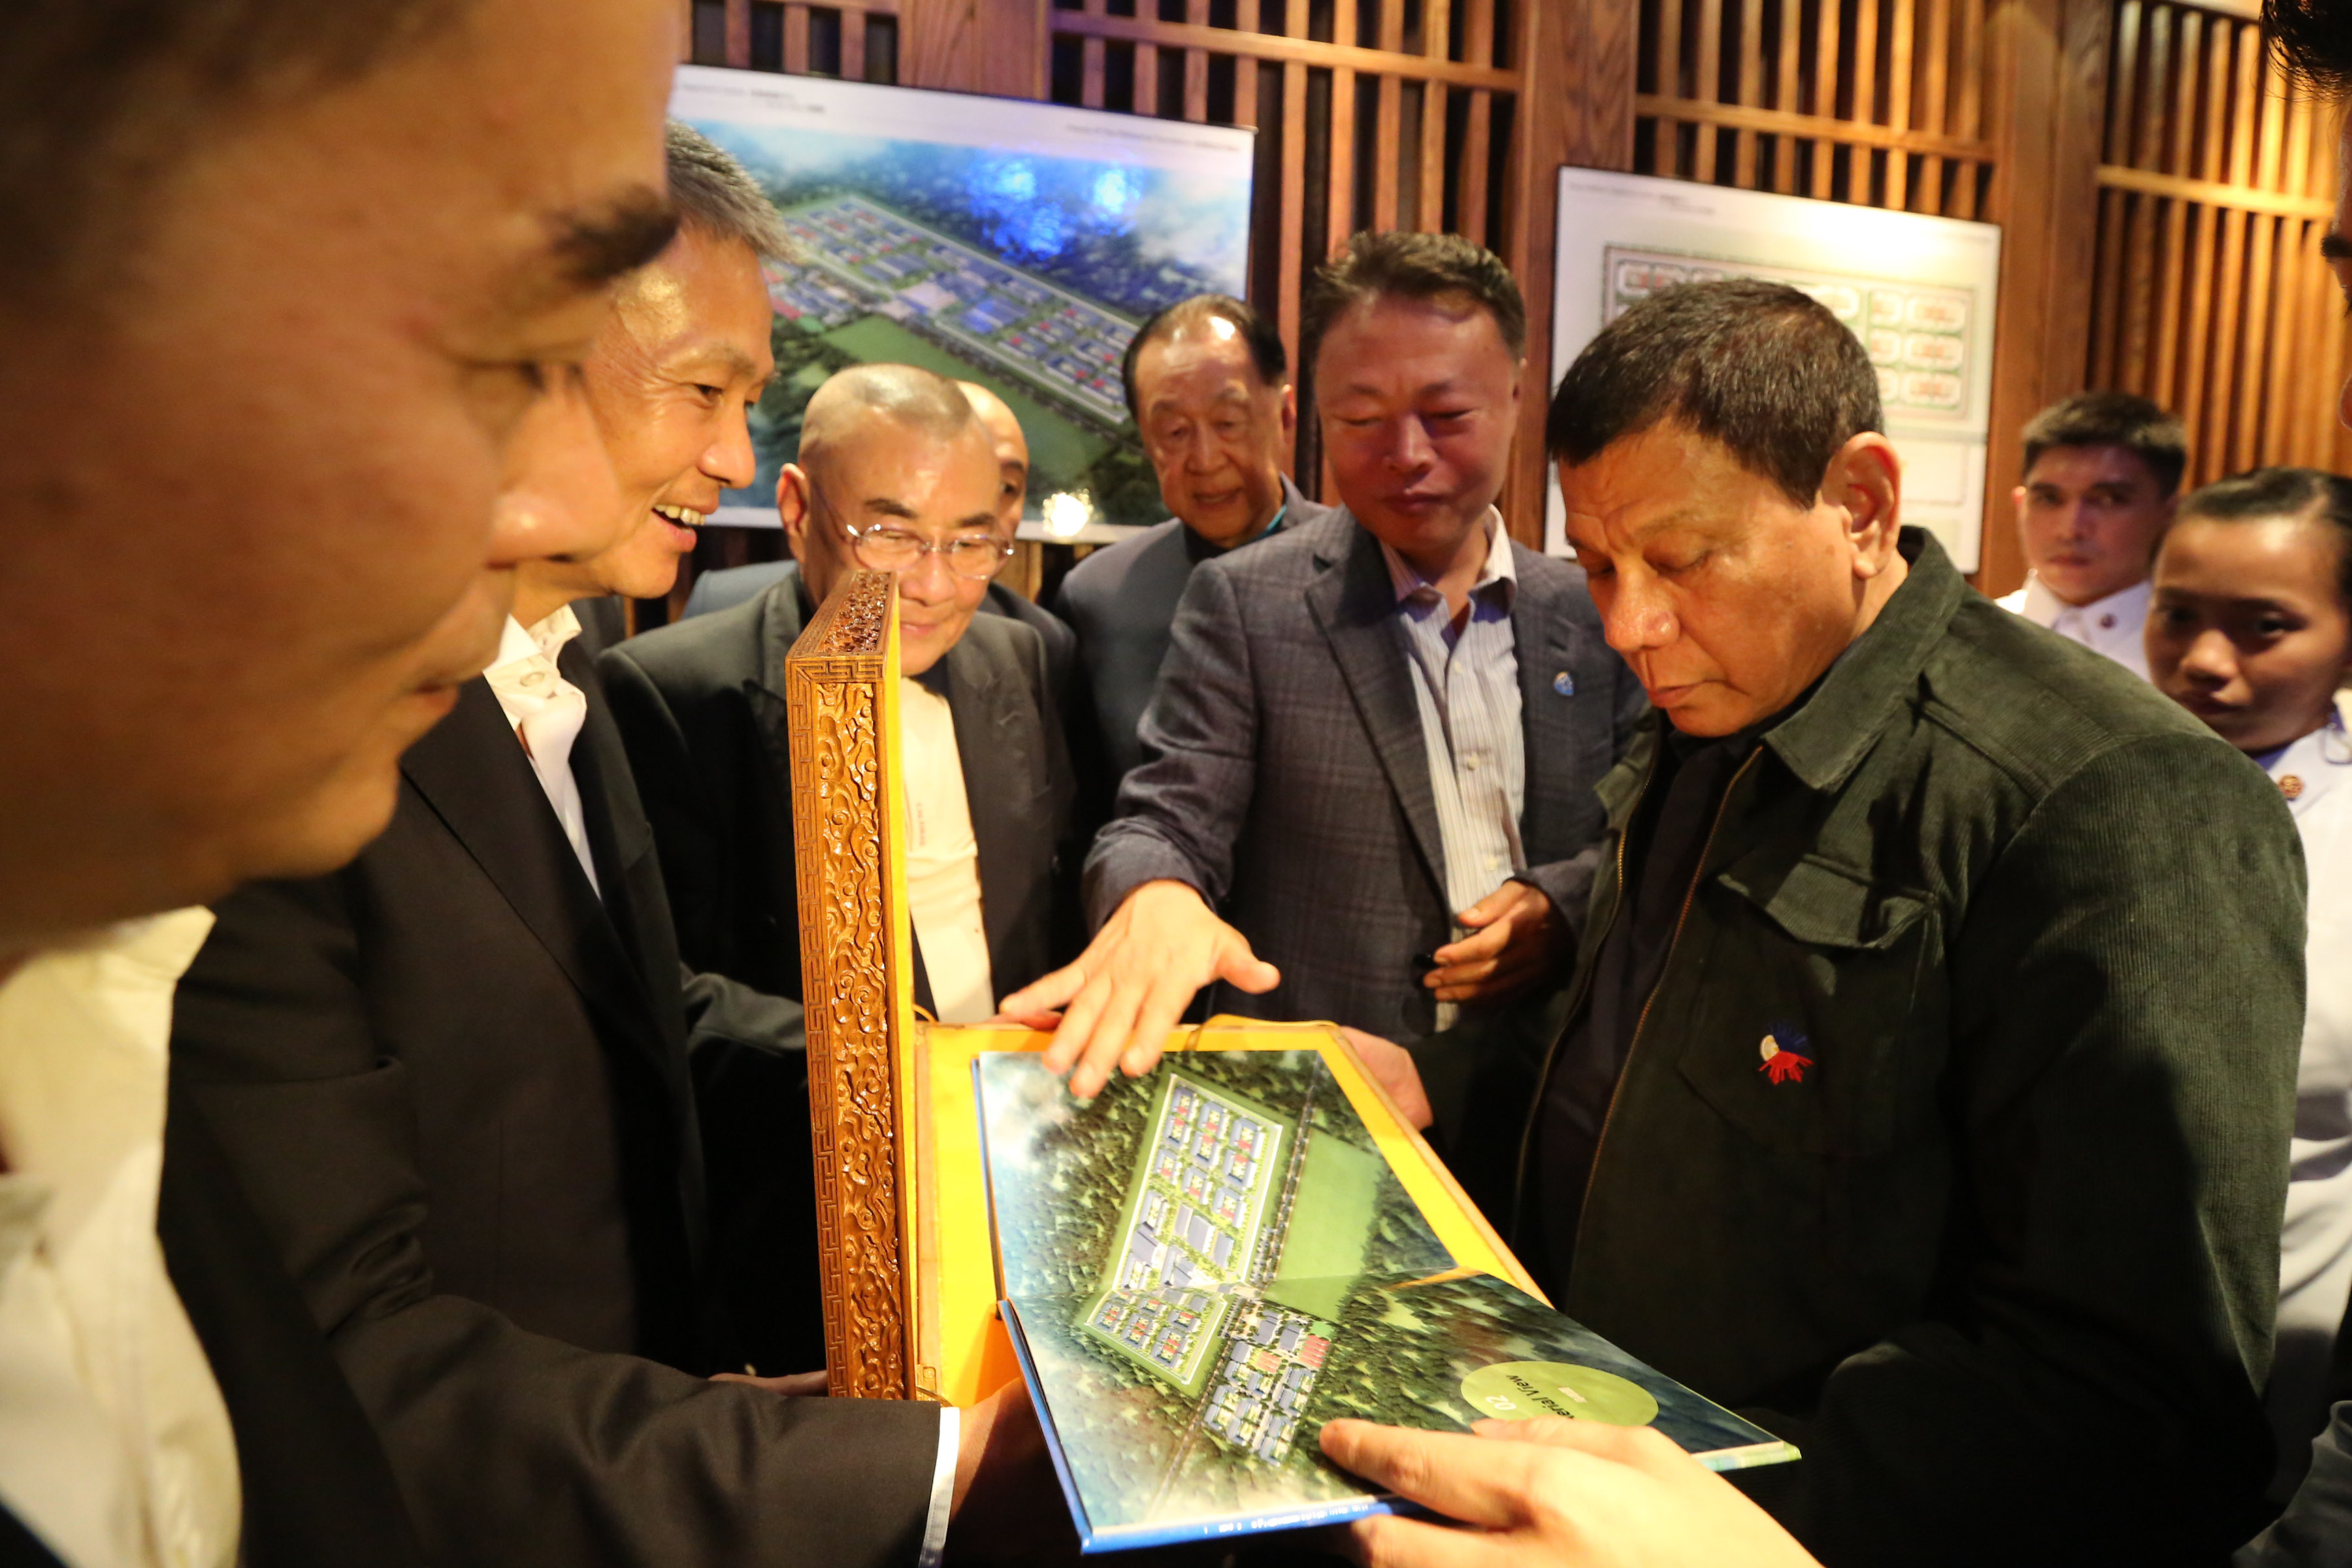 GIFT FROM FRIENDS. President Rodrigo Duterte receives the architect's perspective and blueprint of the proposed Drug Addiction Treatment Center to be donated by the Friends of the Philippines Foundation during a lunch meeting at Dadong Roast Duck Restaurant in Beijing, China on October 19, 2016. Photo by King Rodriguez/Presidential Photo